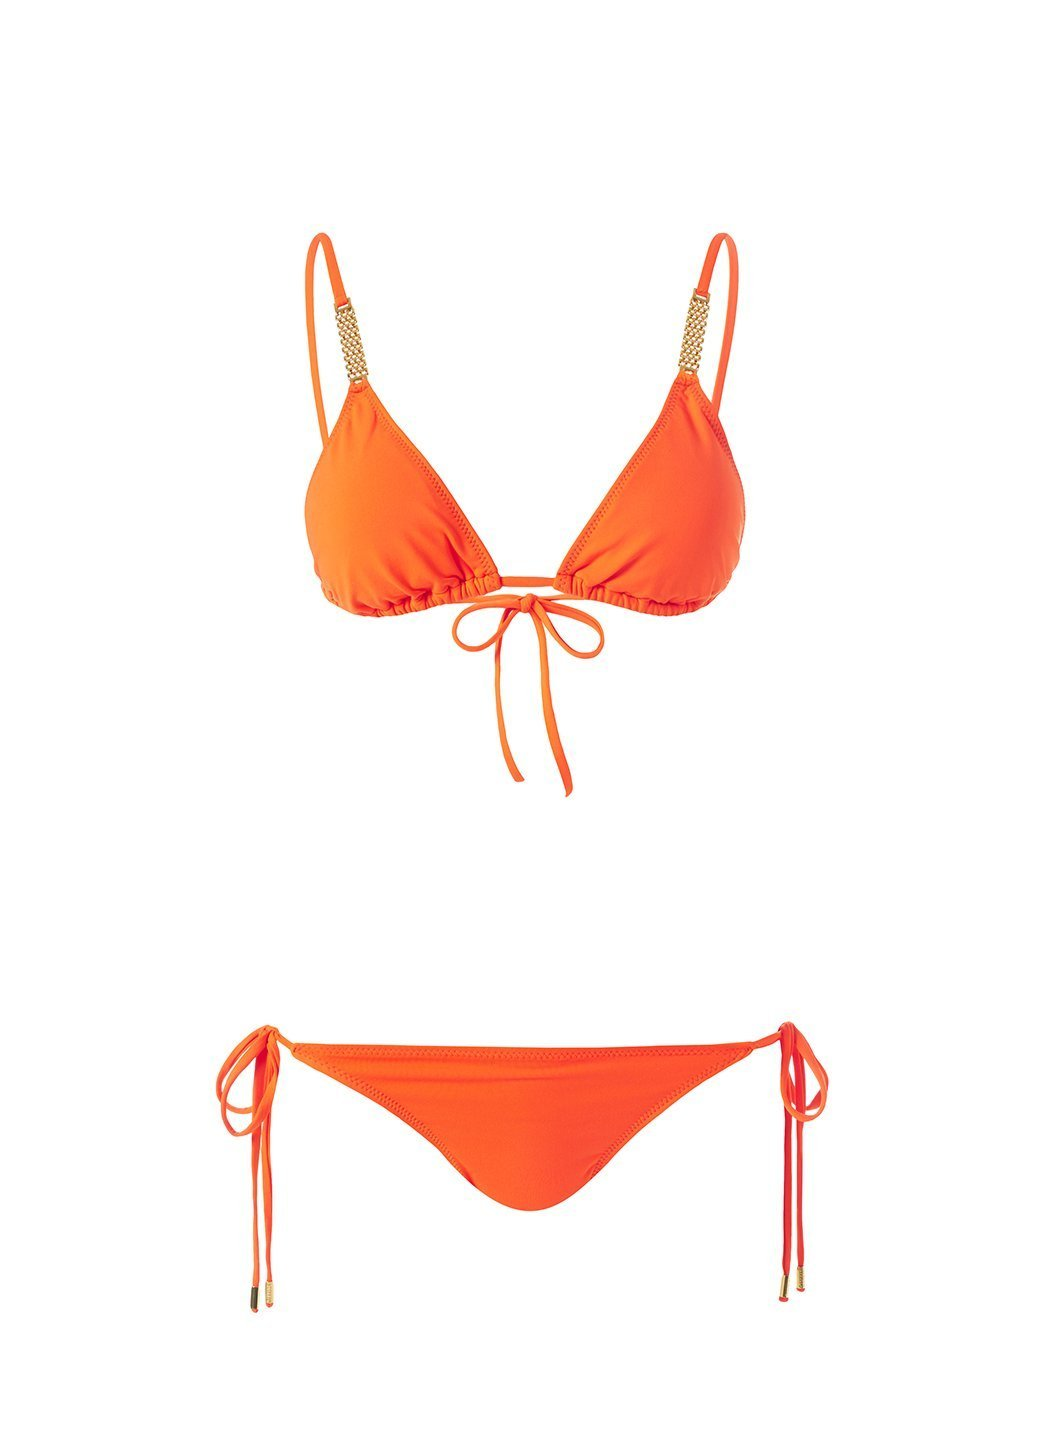 Maldives Papaya Bikini Cutout